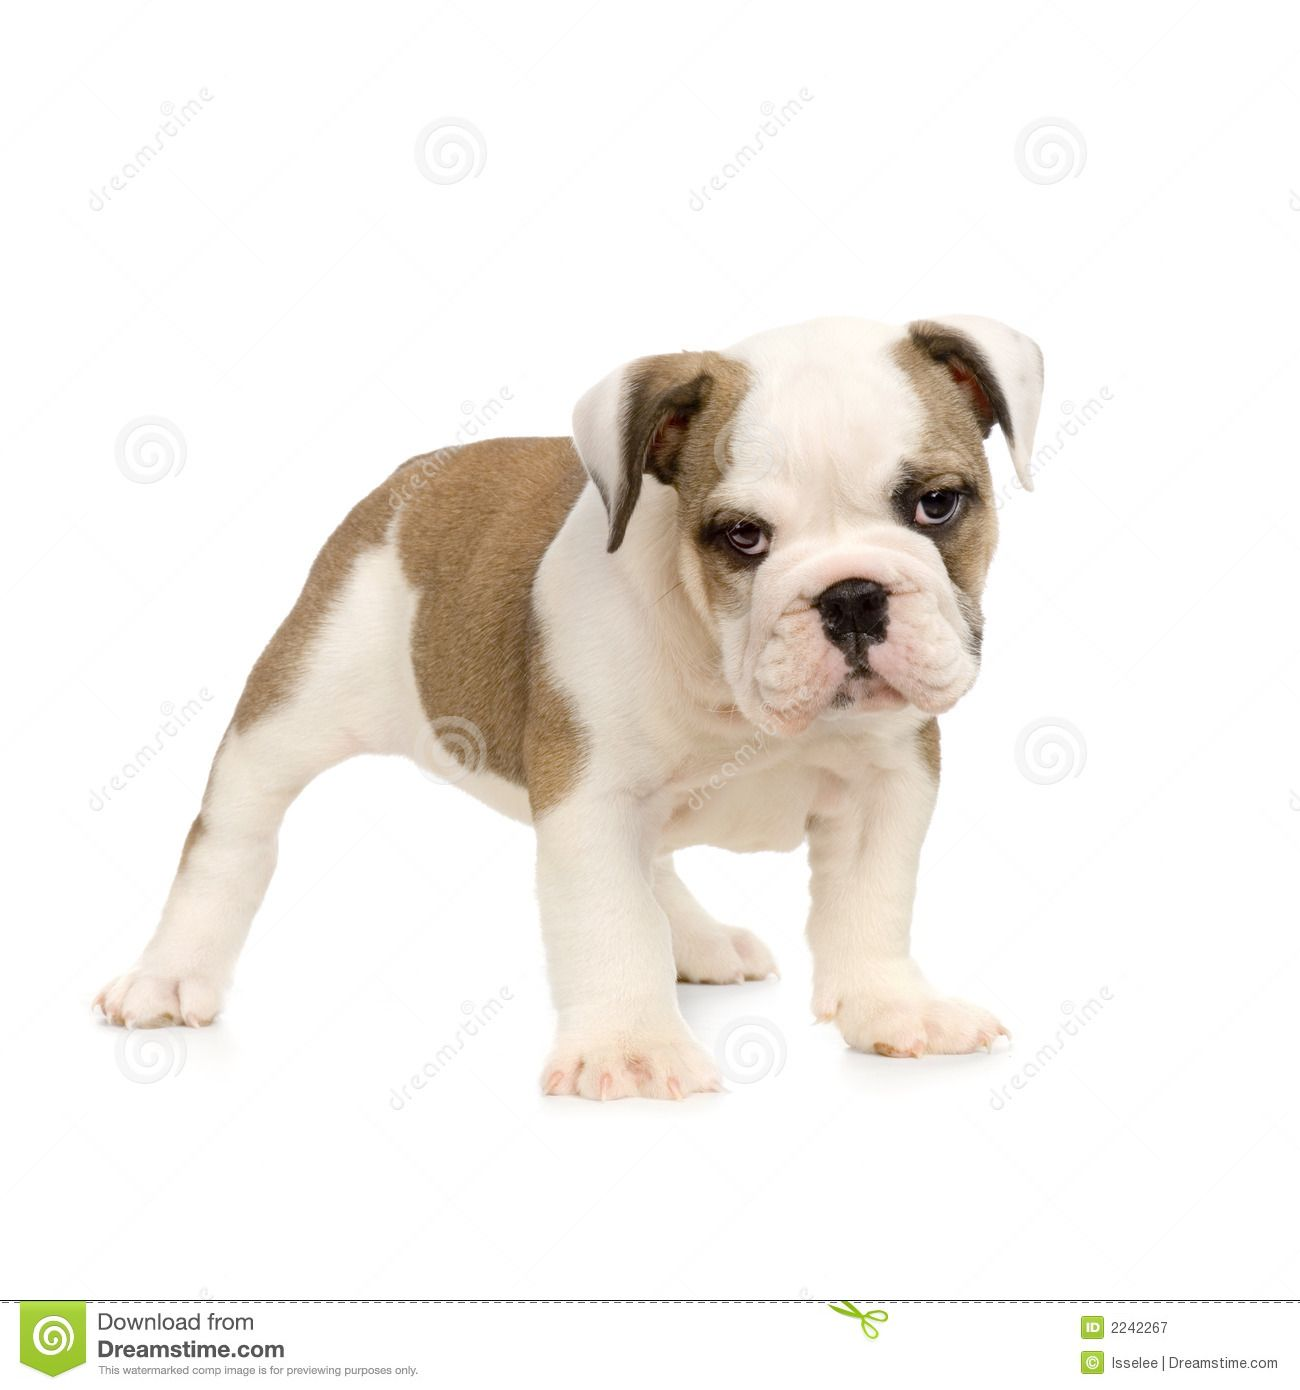 English Bulldog Puppy Bulldog Puppies Bulldog French Bulldog Dog